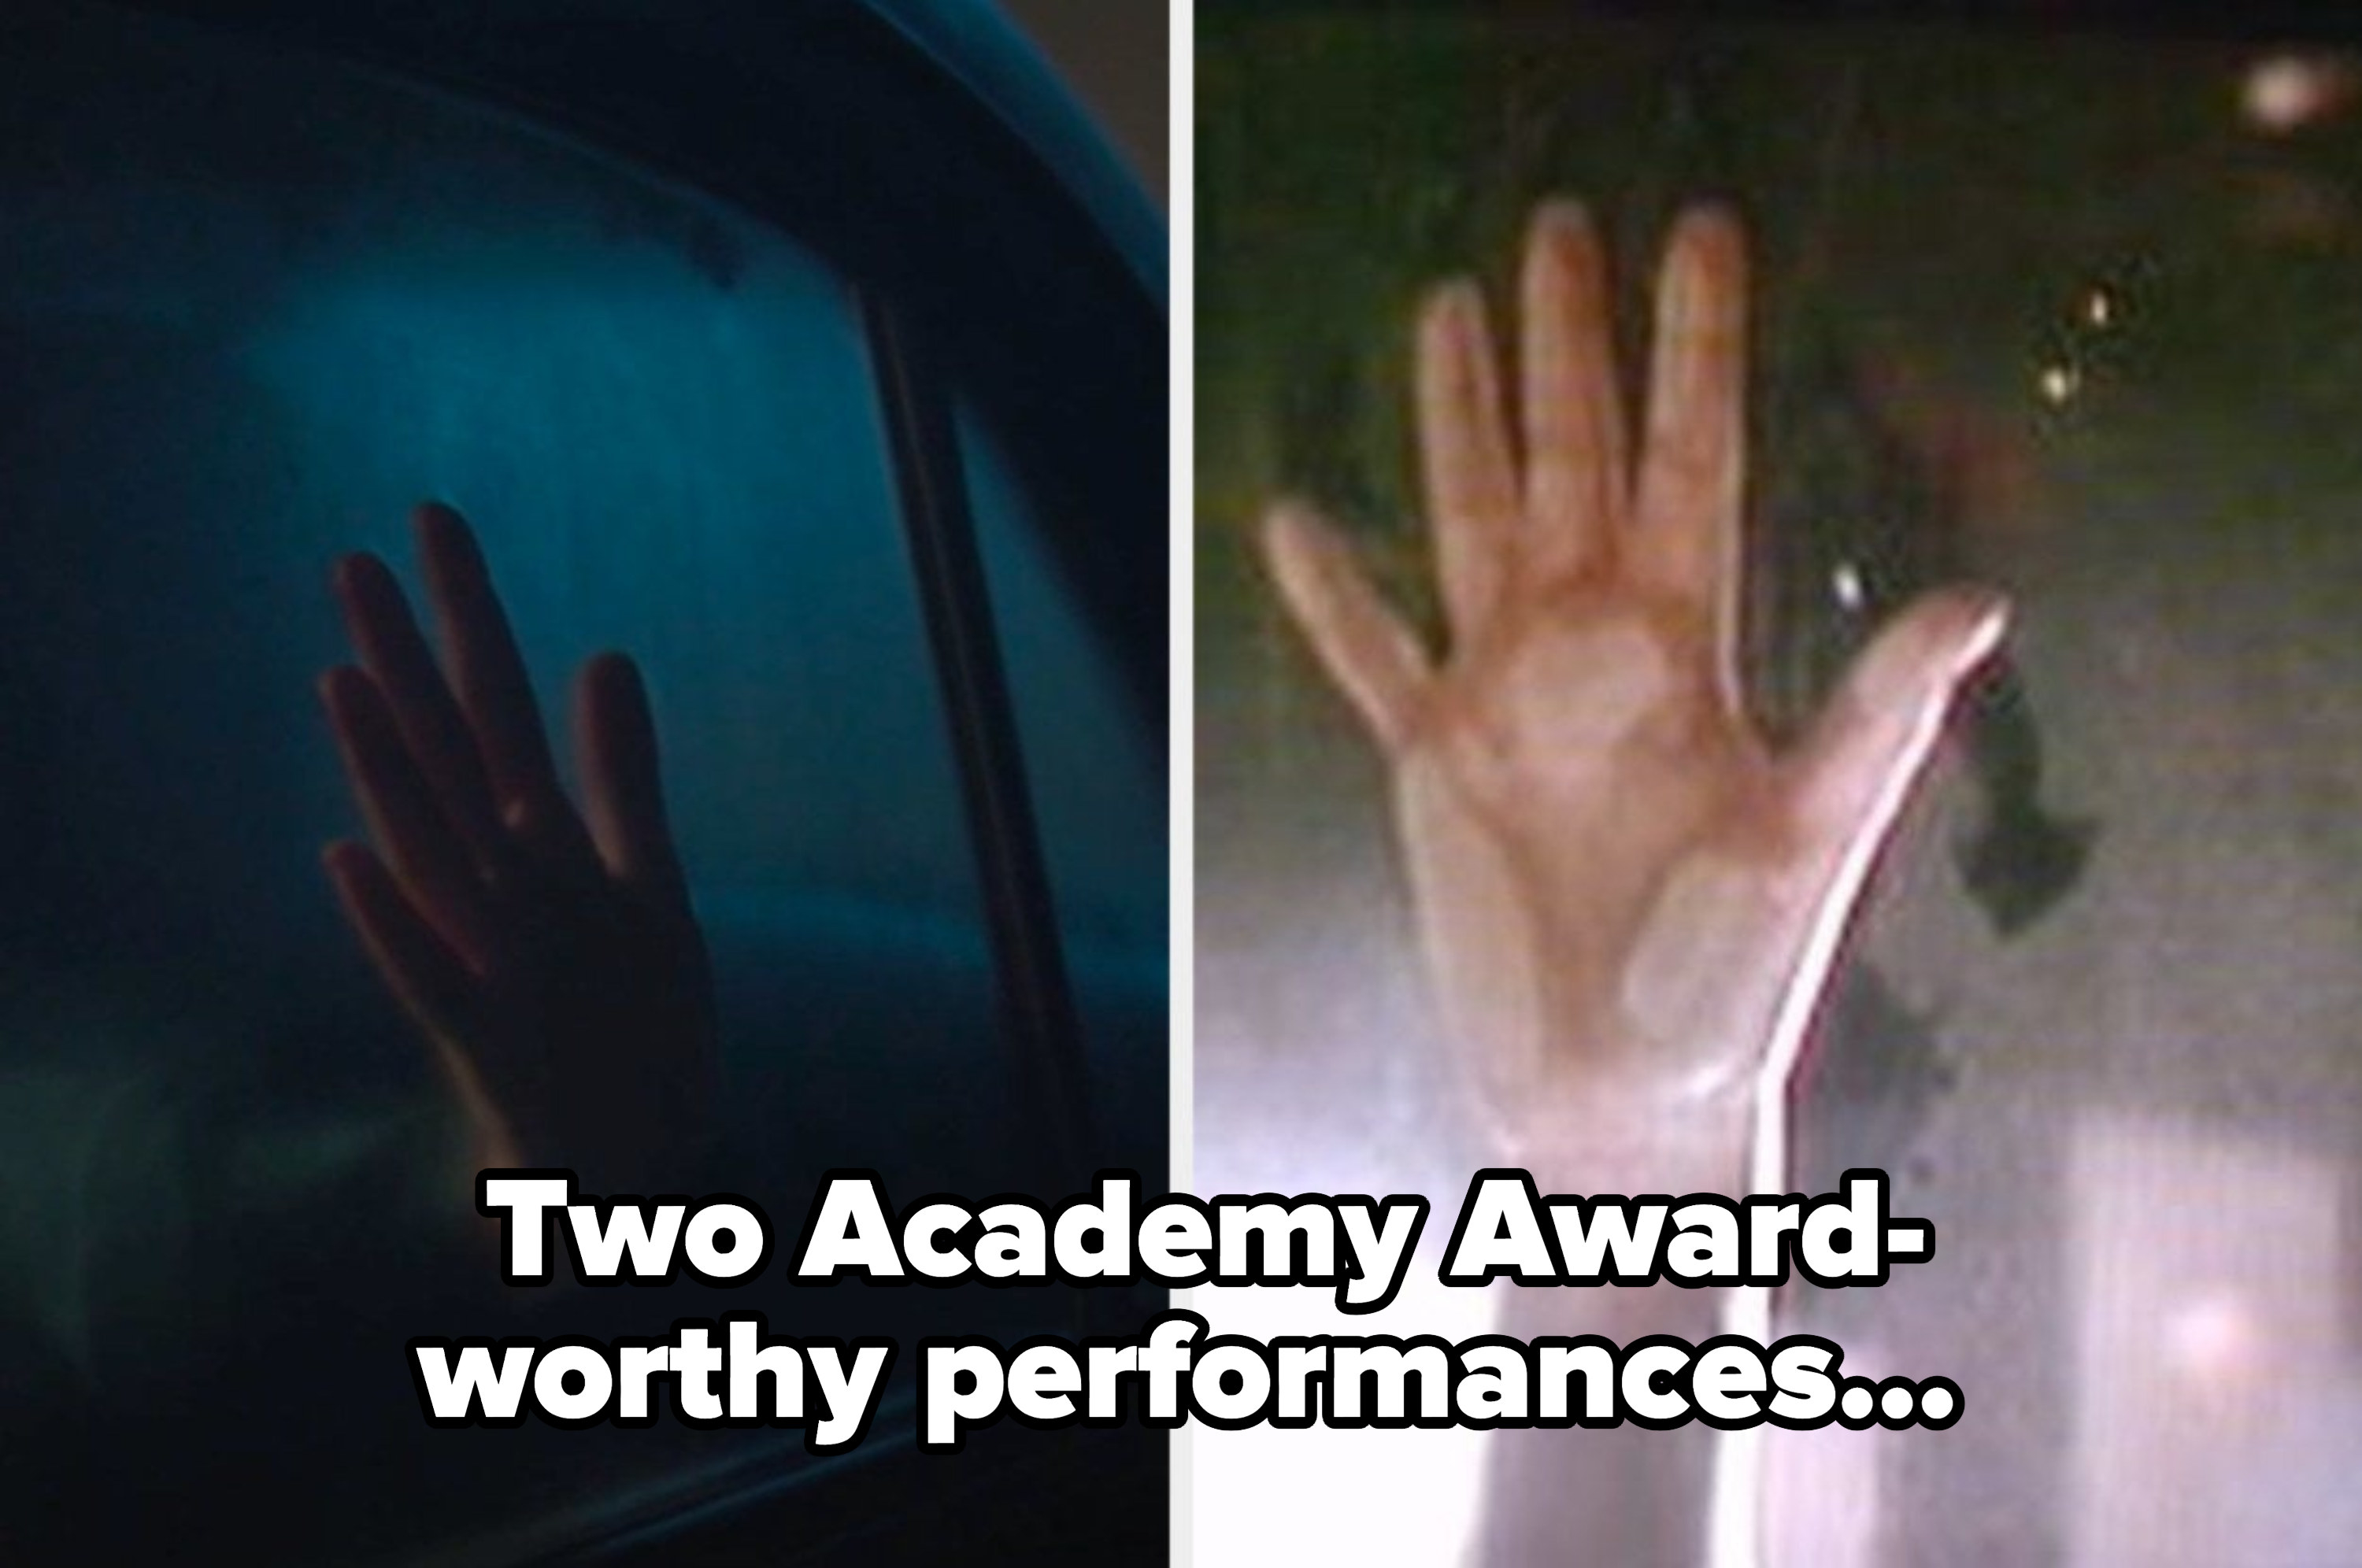 Archie's hand side by side with the hand scene in the Titanic